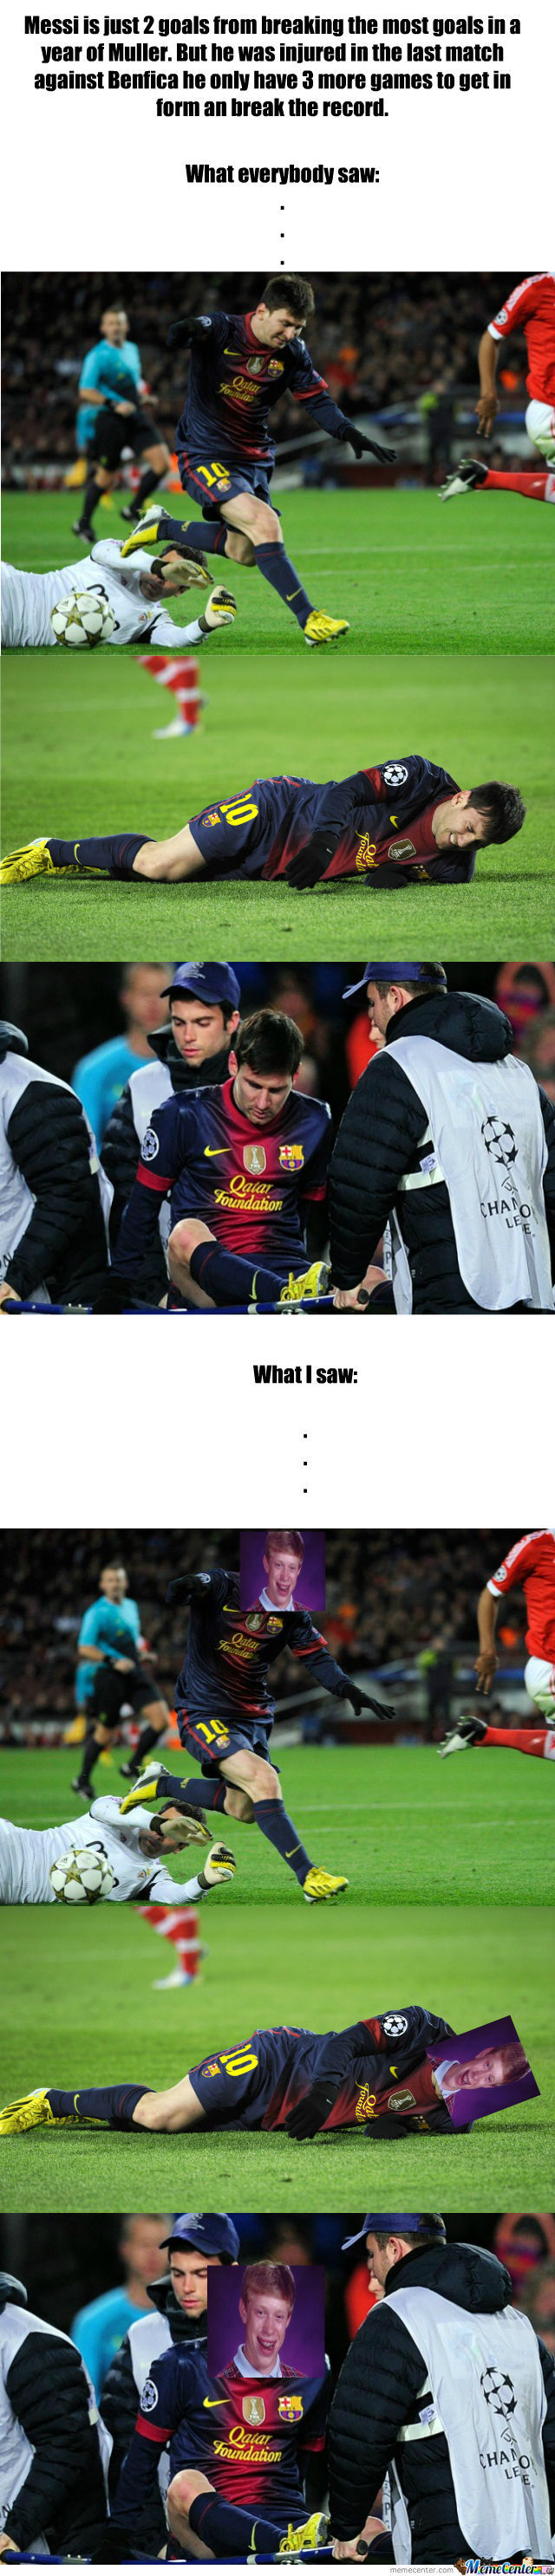 Bad Luck Messi